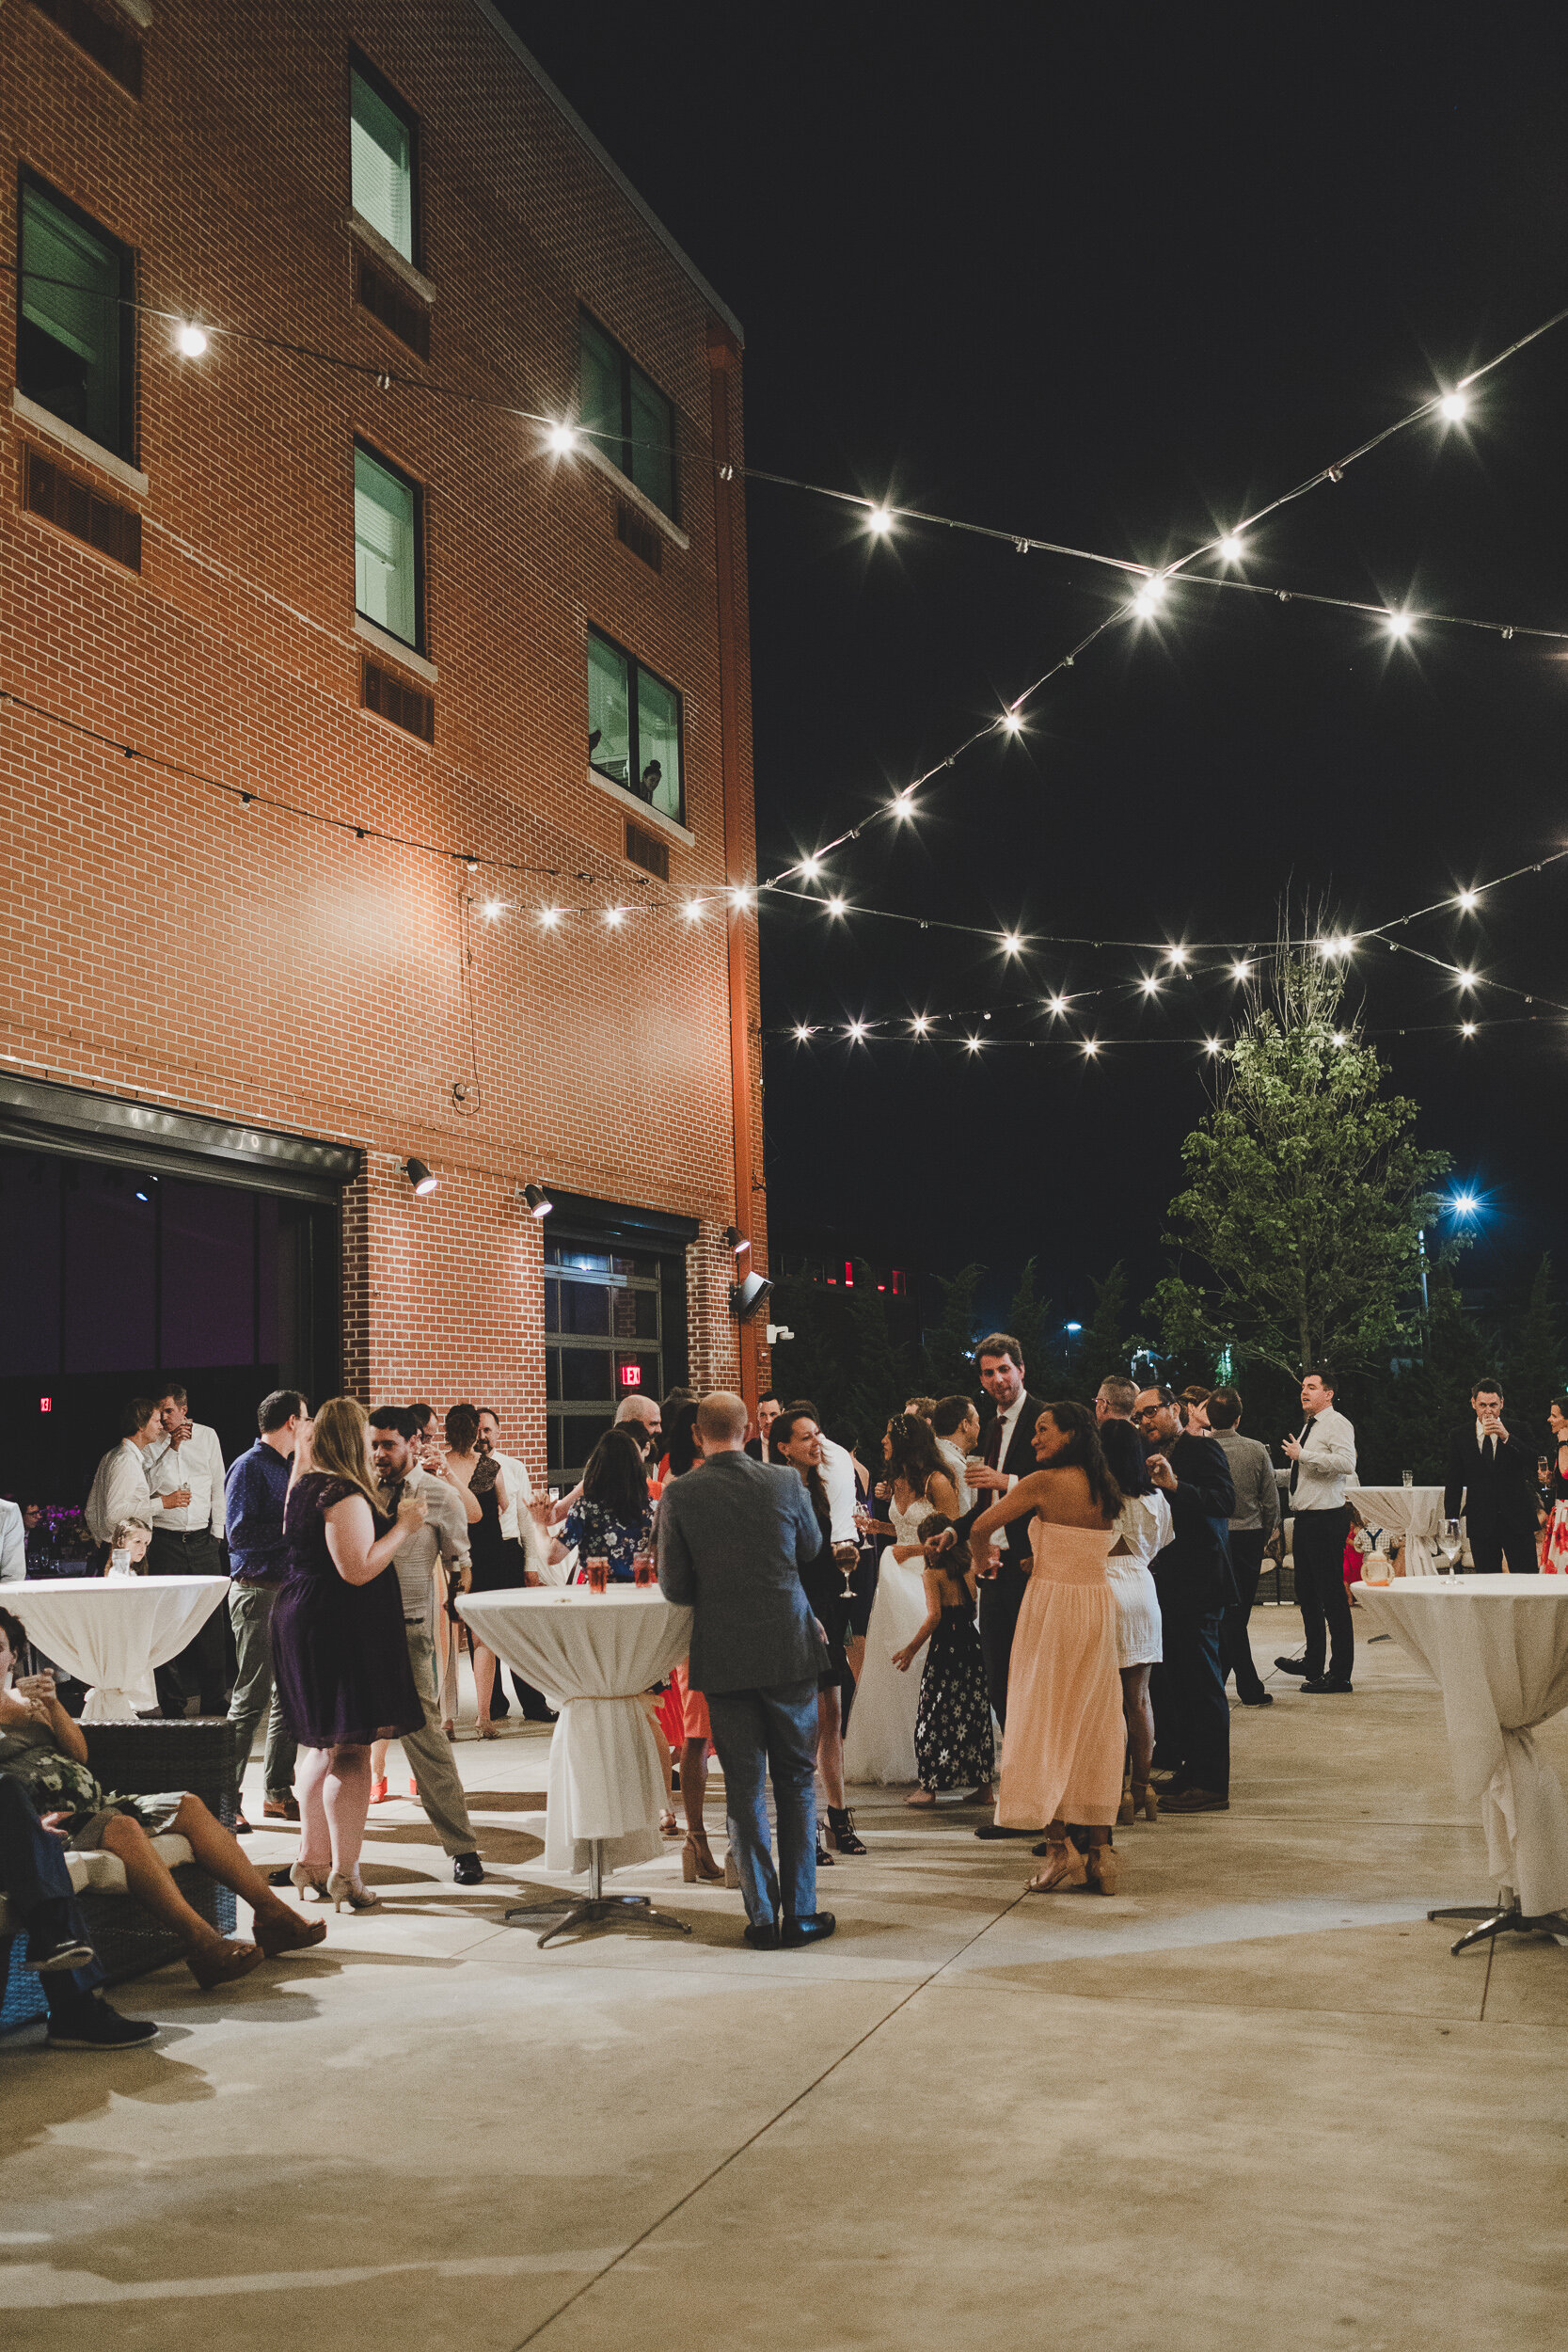 Colorful wedding at The Asbury Hotel in Asbury Park, NJ